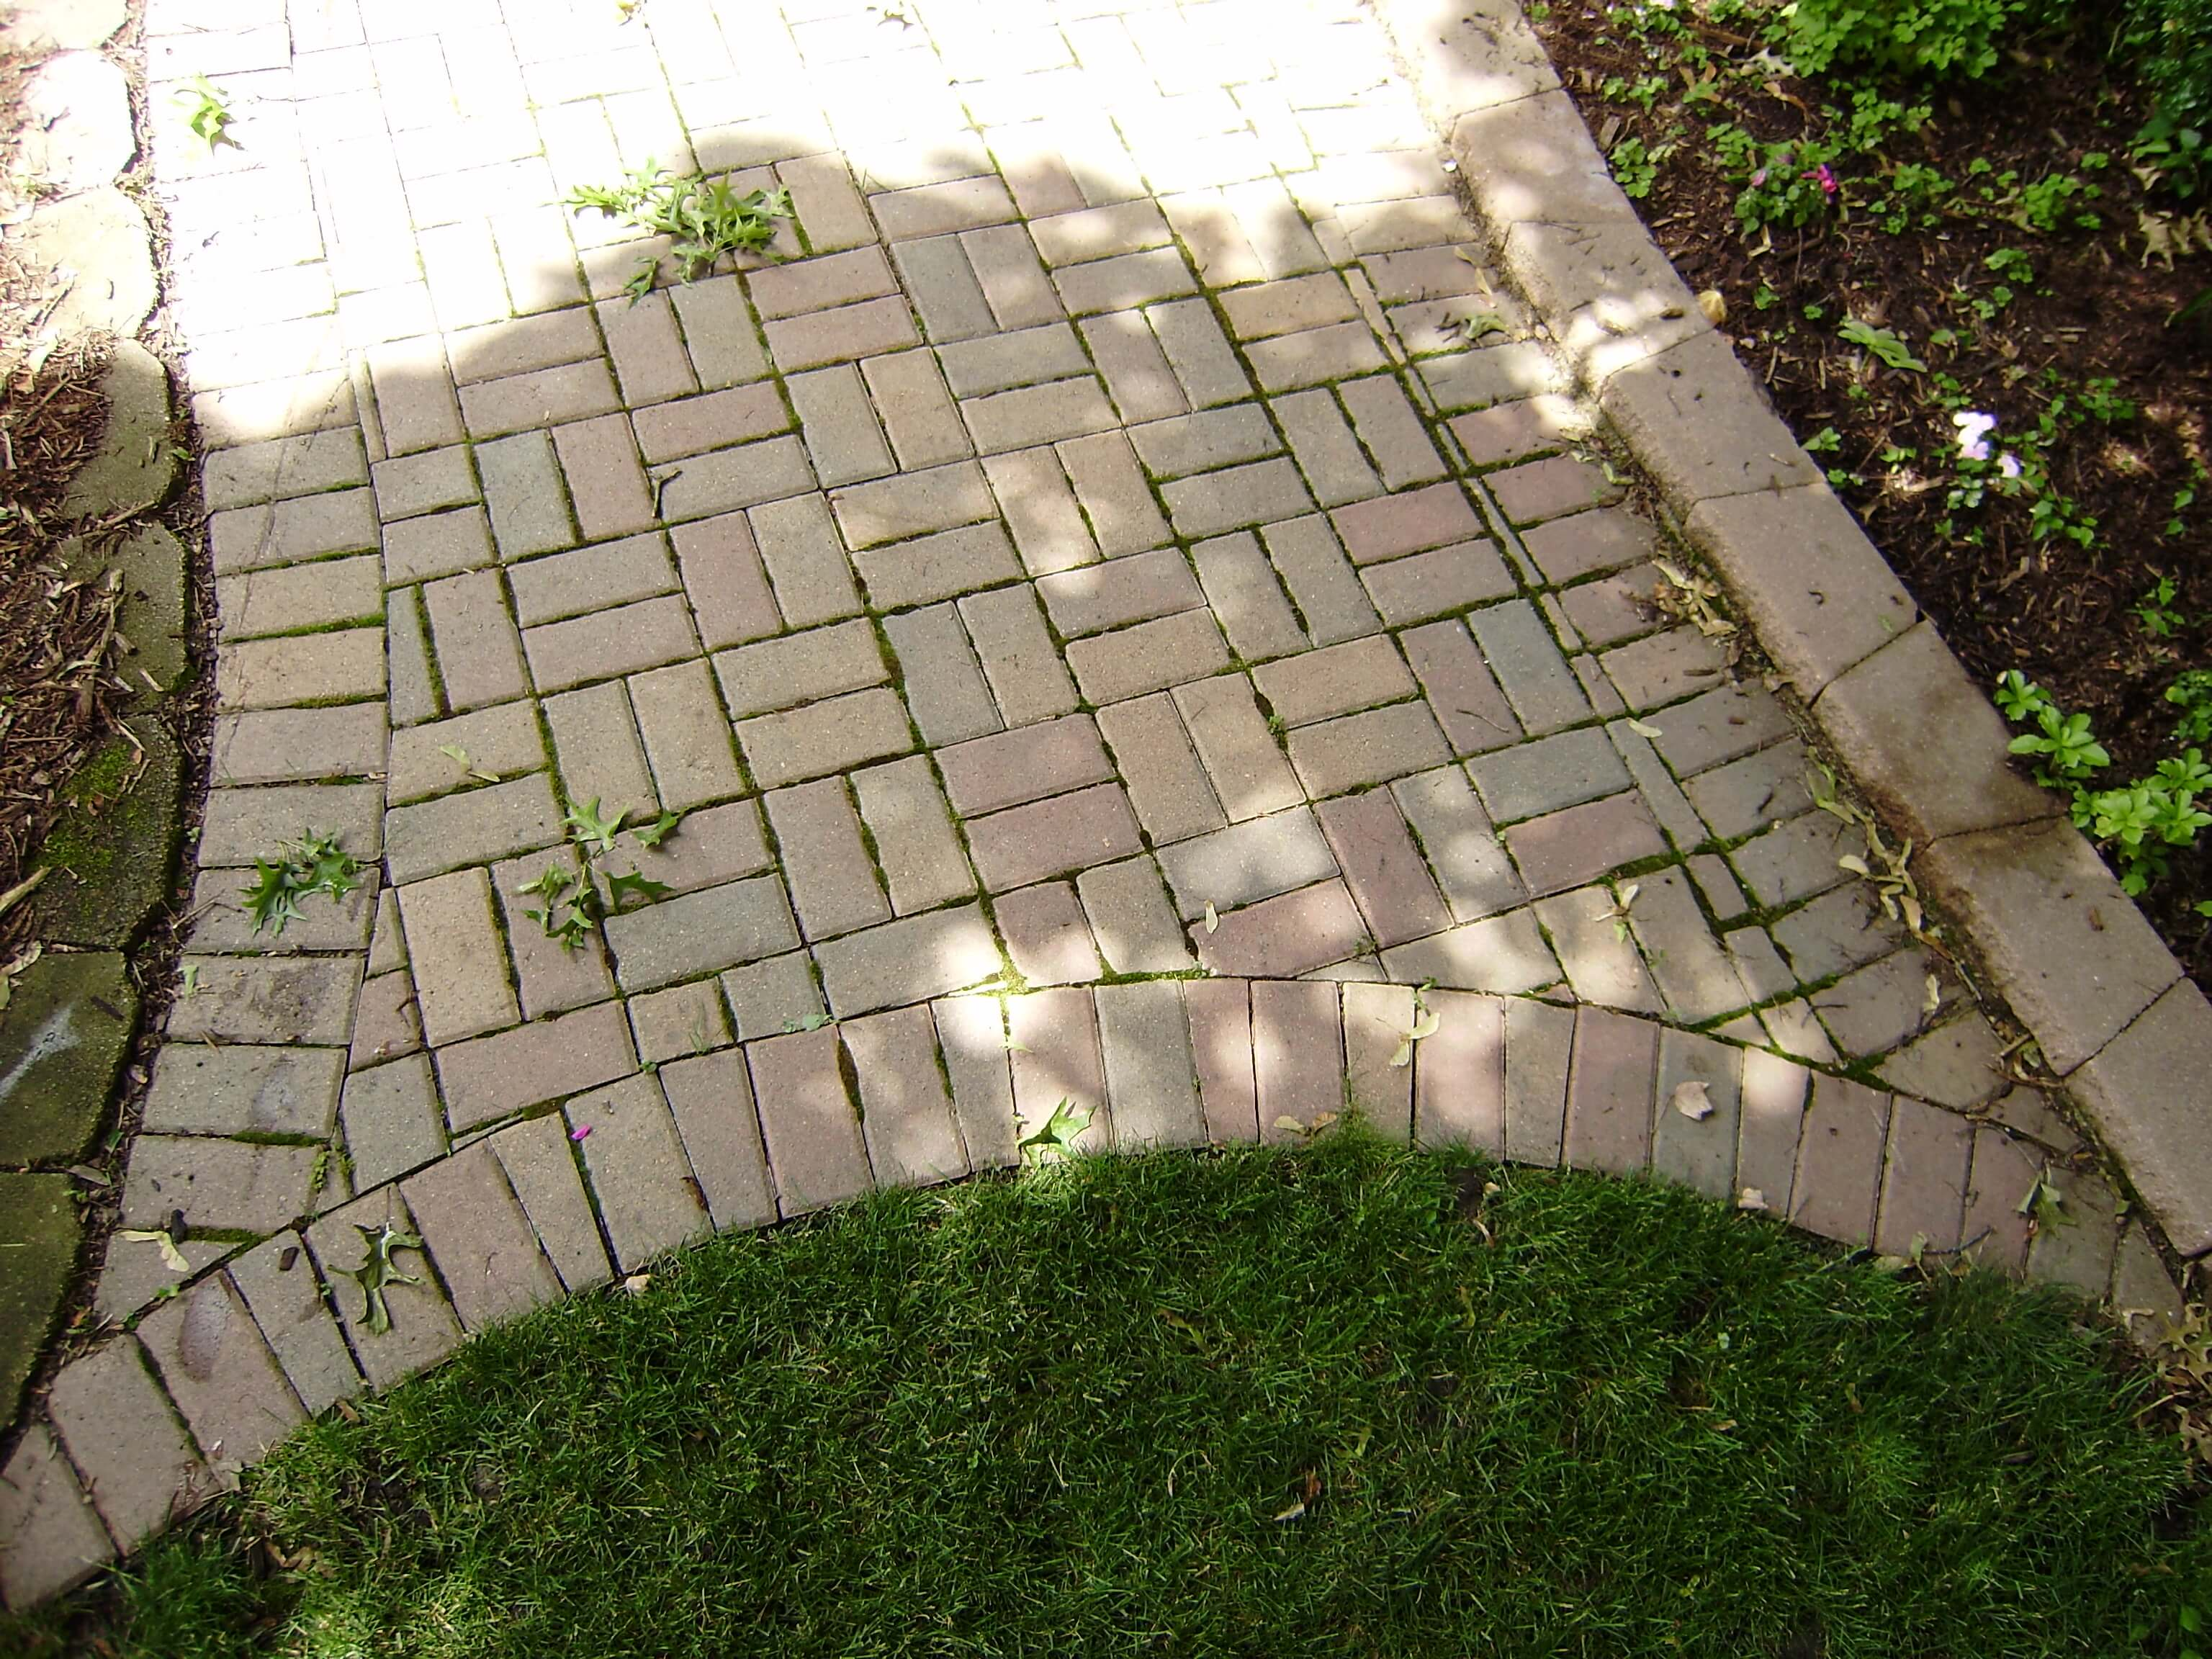 Paver patio walkway that is being taken over by moss algea and other debris